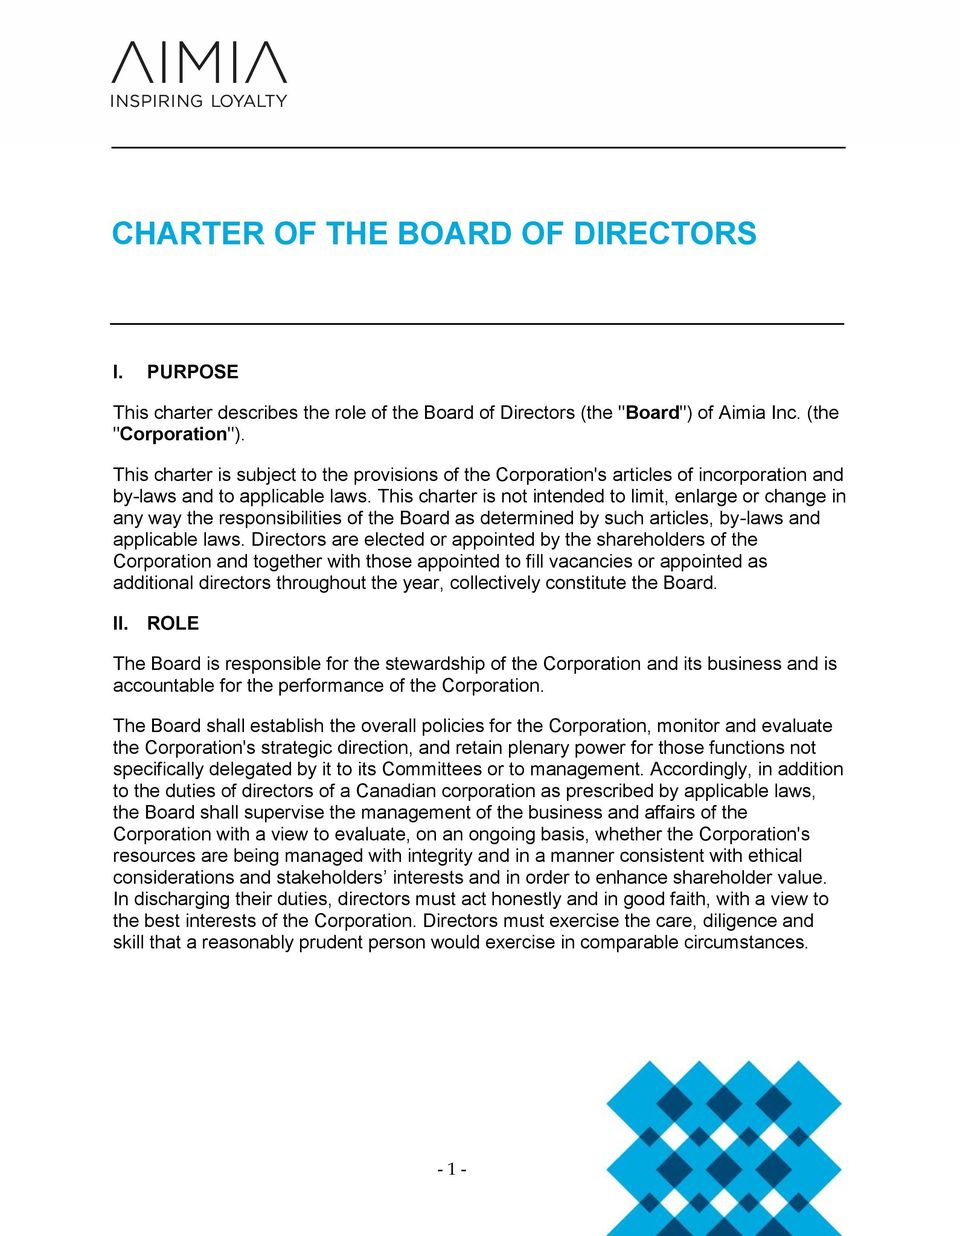 This charter is not intended to limit, enlarge or change in any way the responsibilities of the Board as determined by such articles, by-laws and applicable laws.